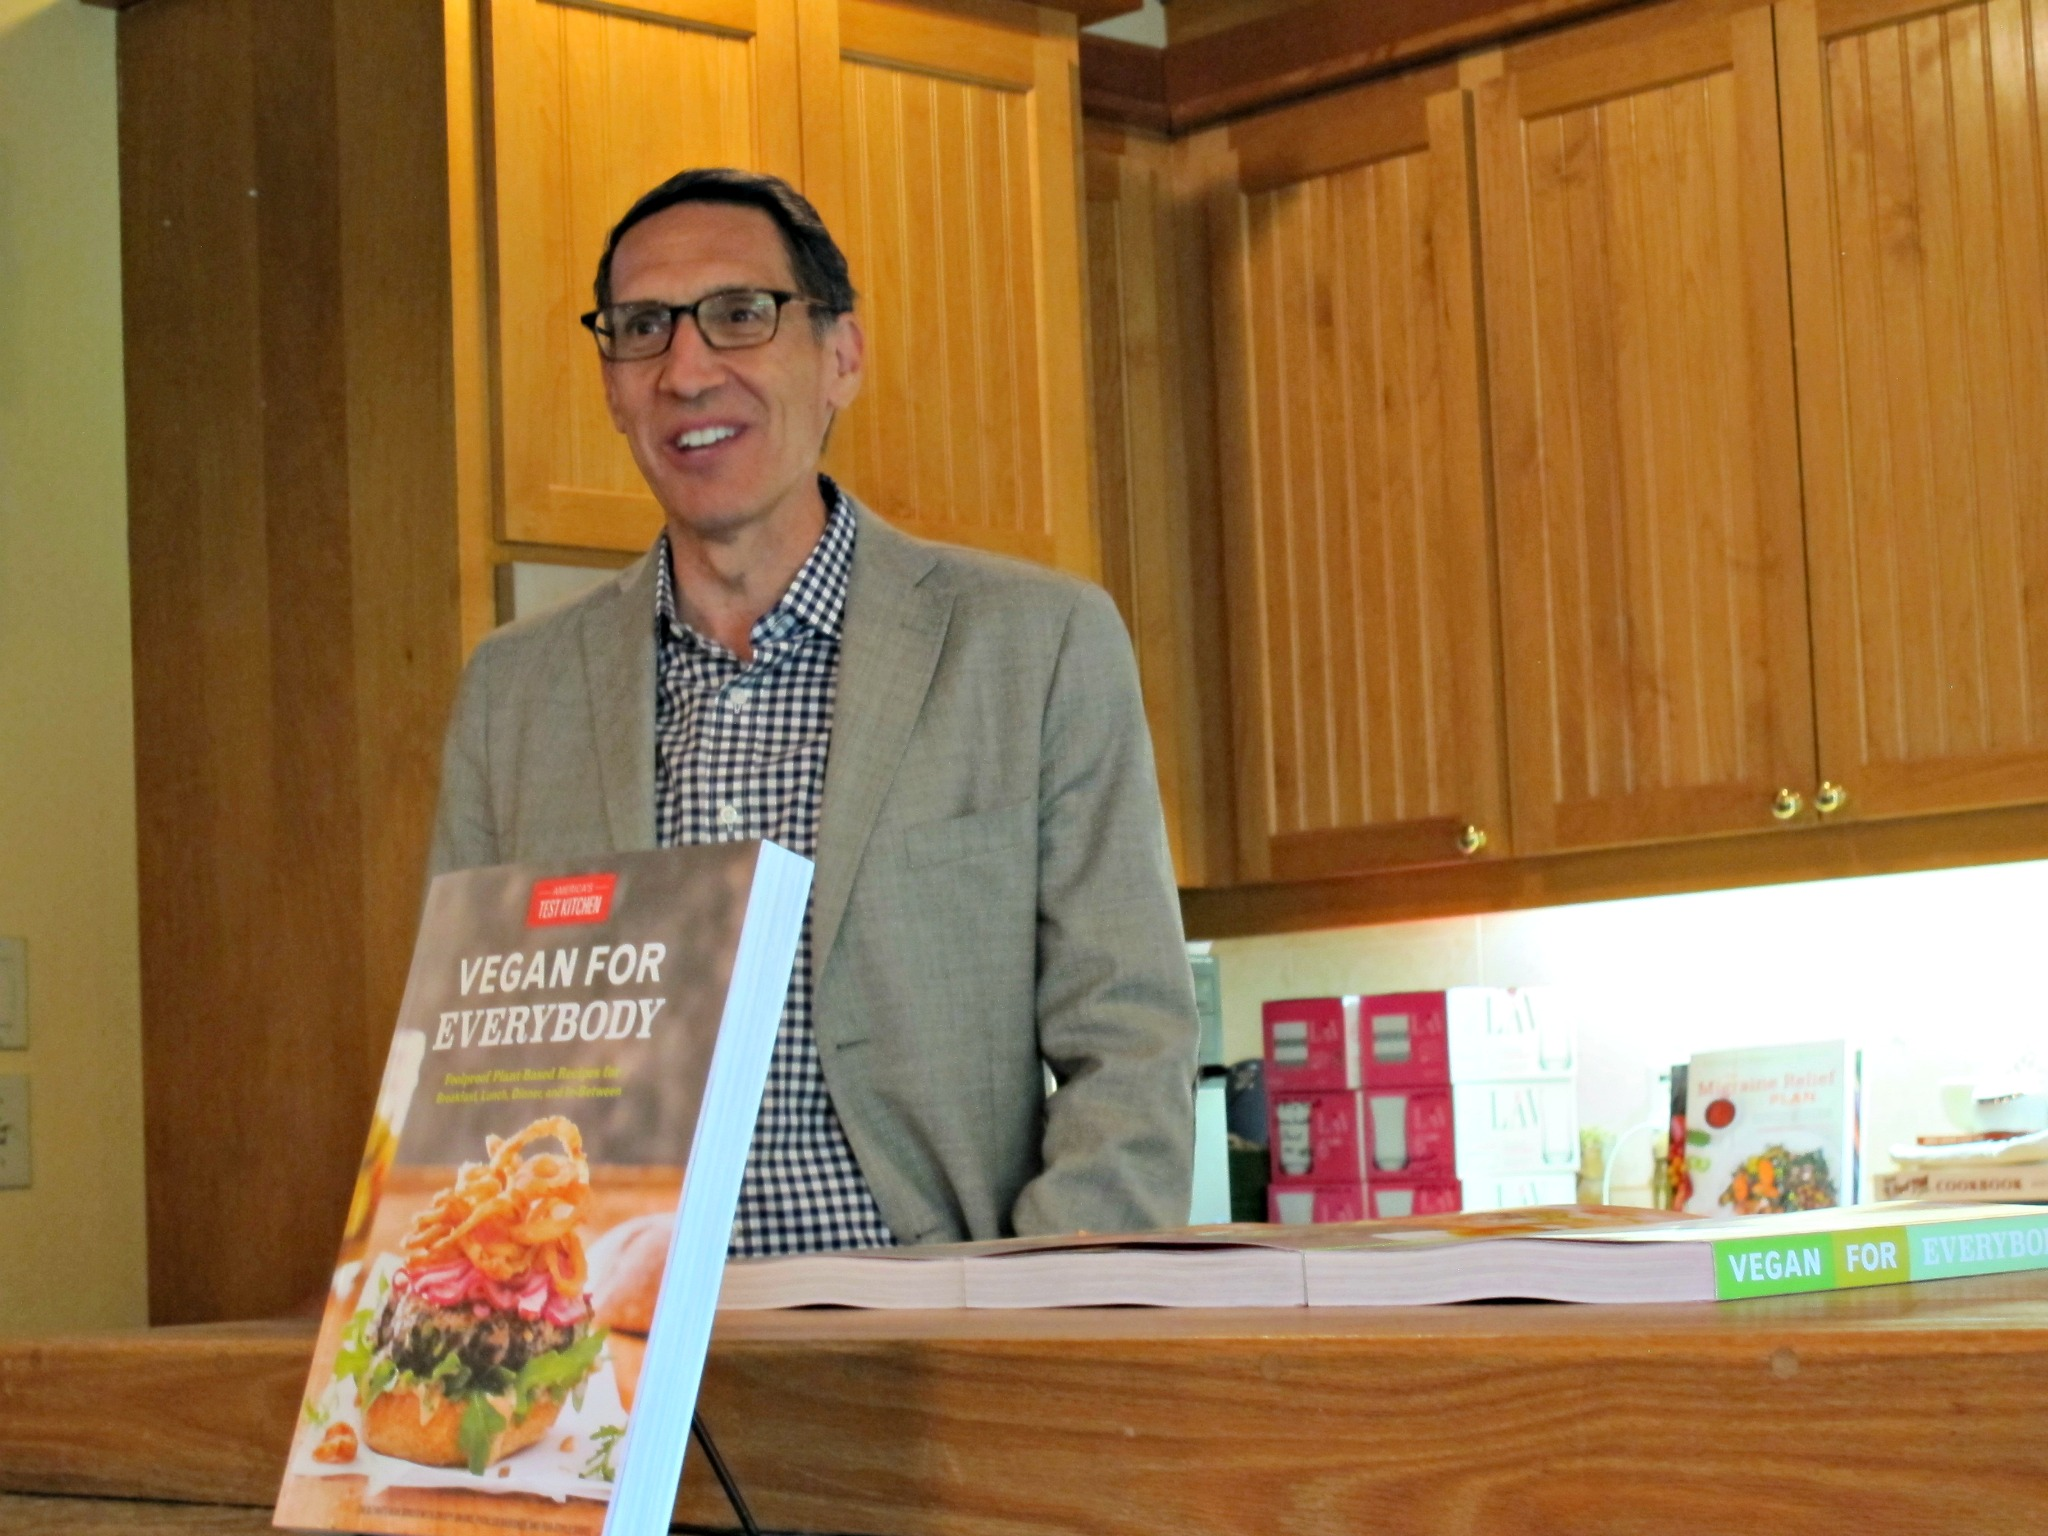 Jack Bishop discusses new America's Test Kitchen book, Vegan for Everybody